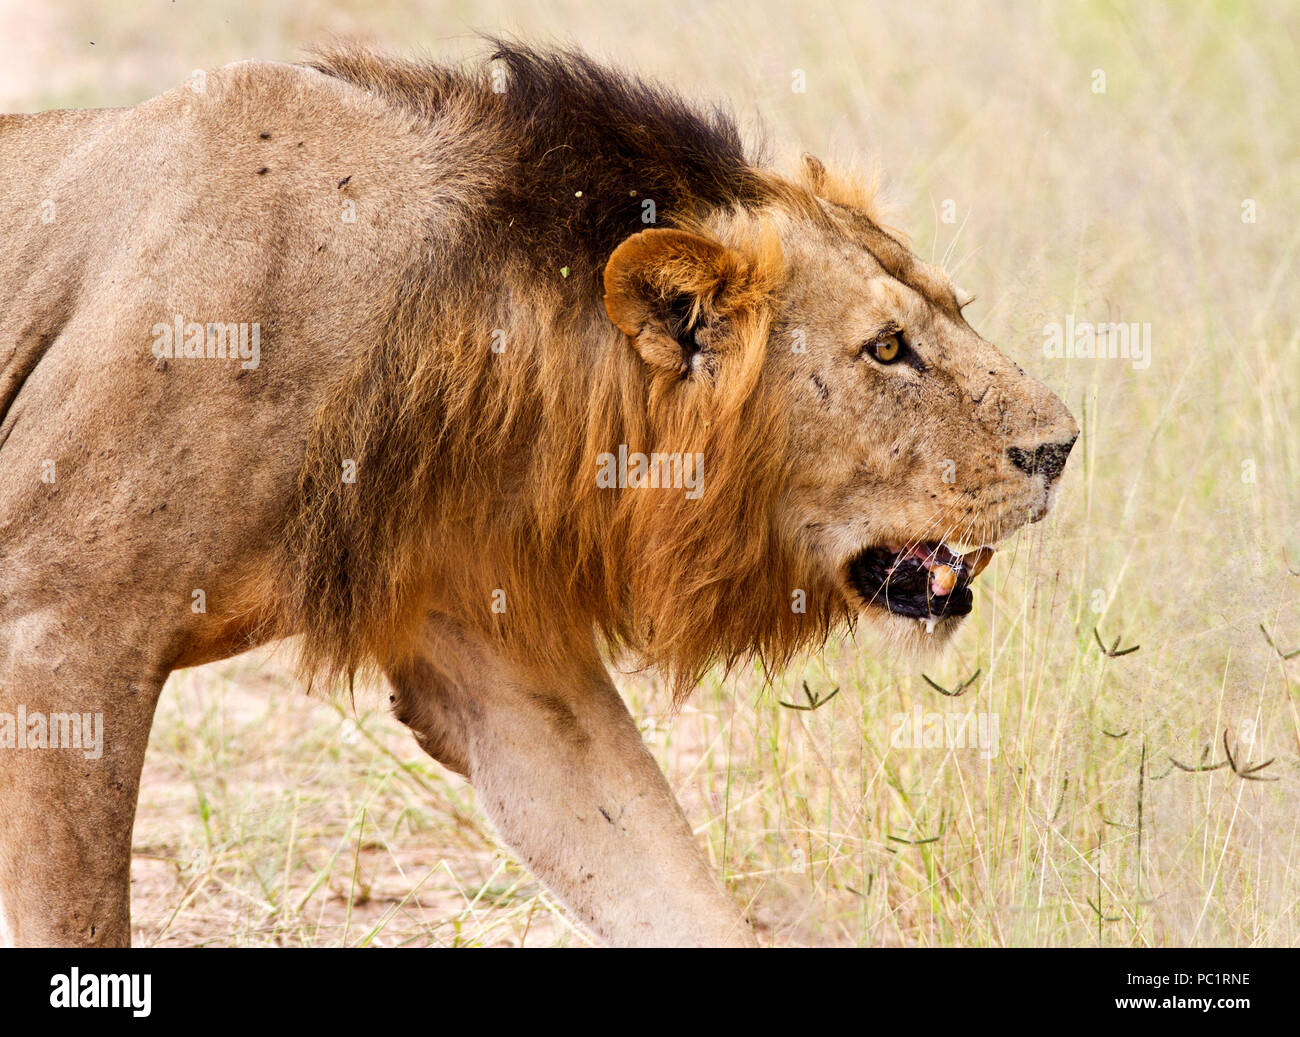 A pide male makes a cautious approach to the rest of his pride after they have fed well from a kill. - Stock Image